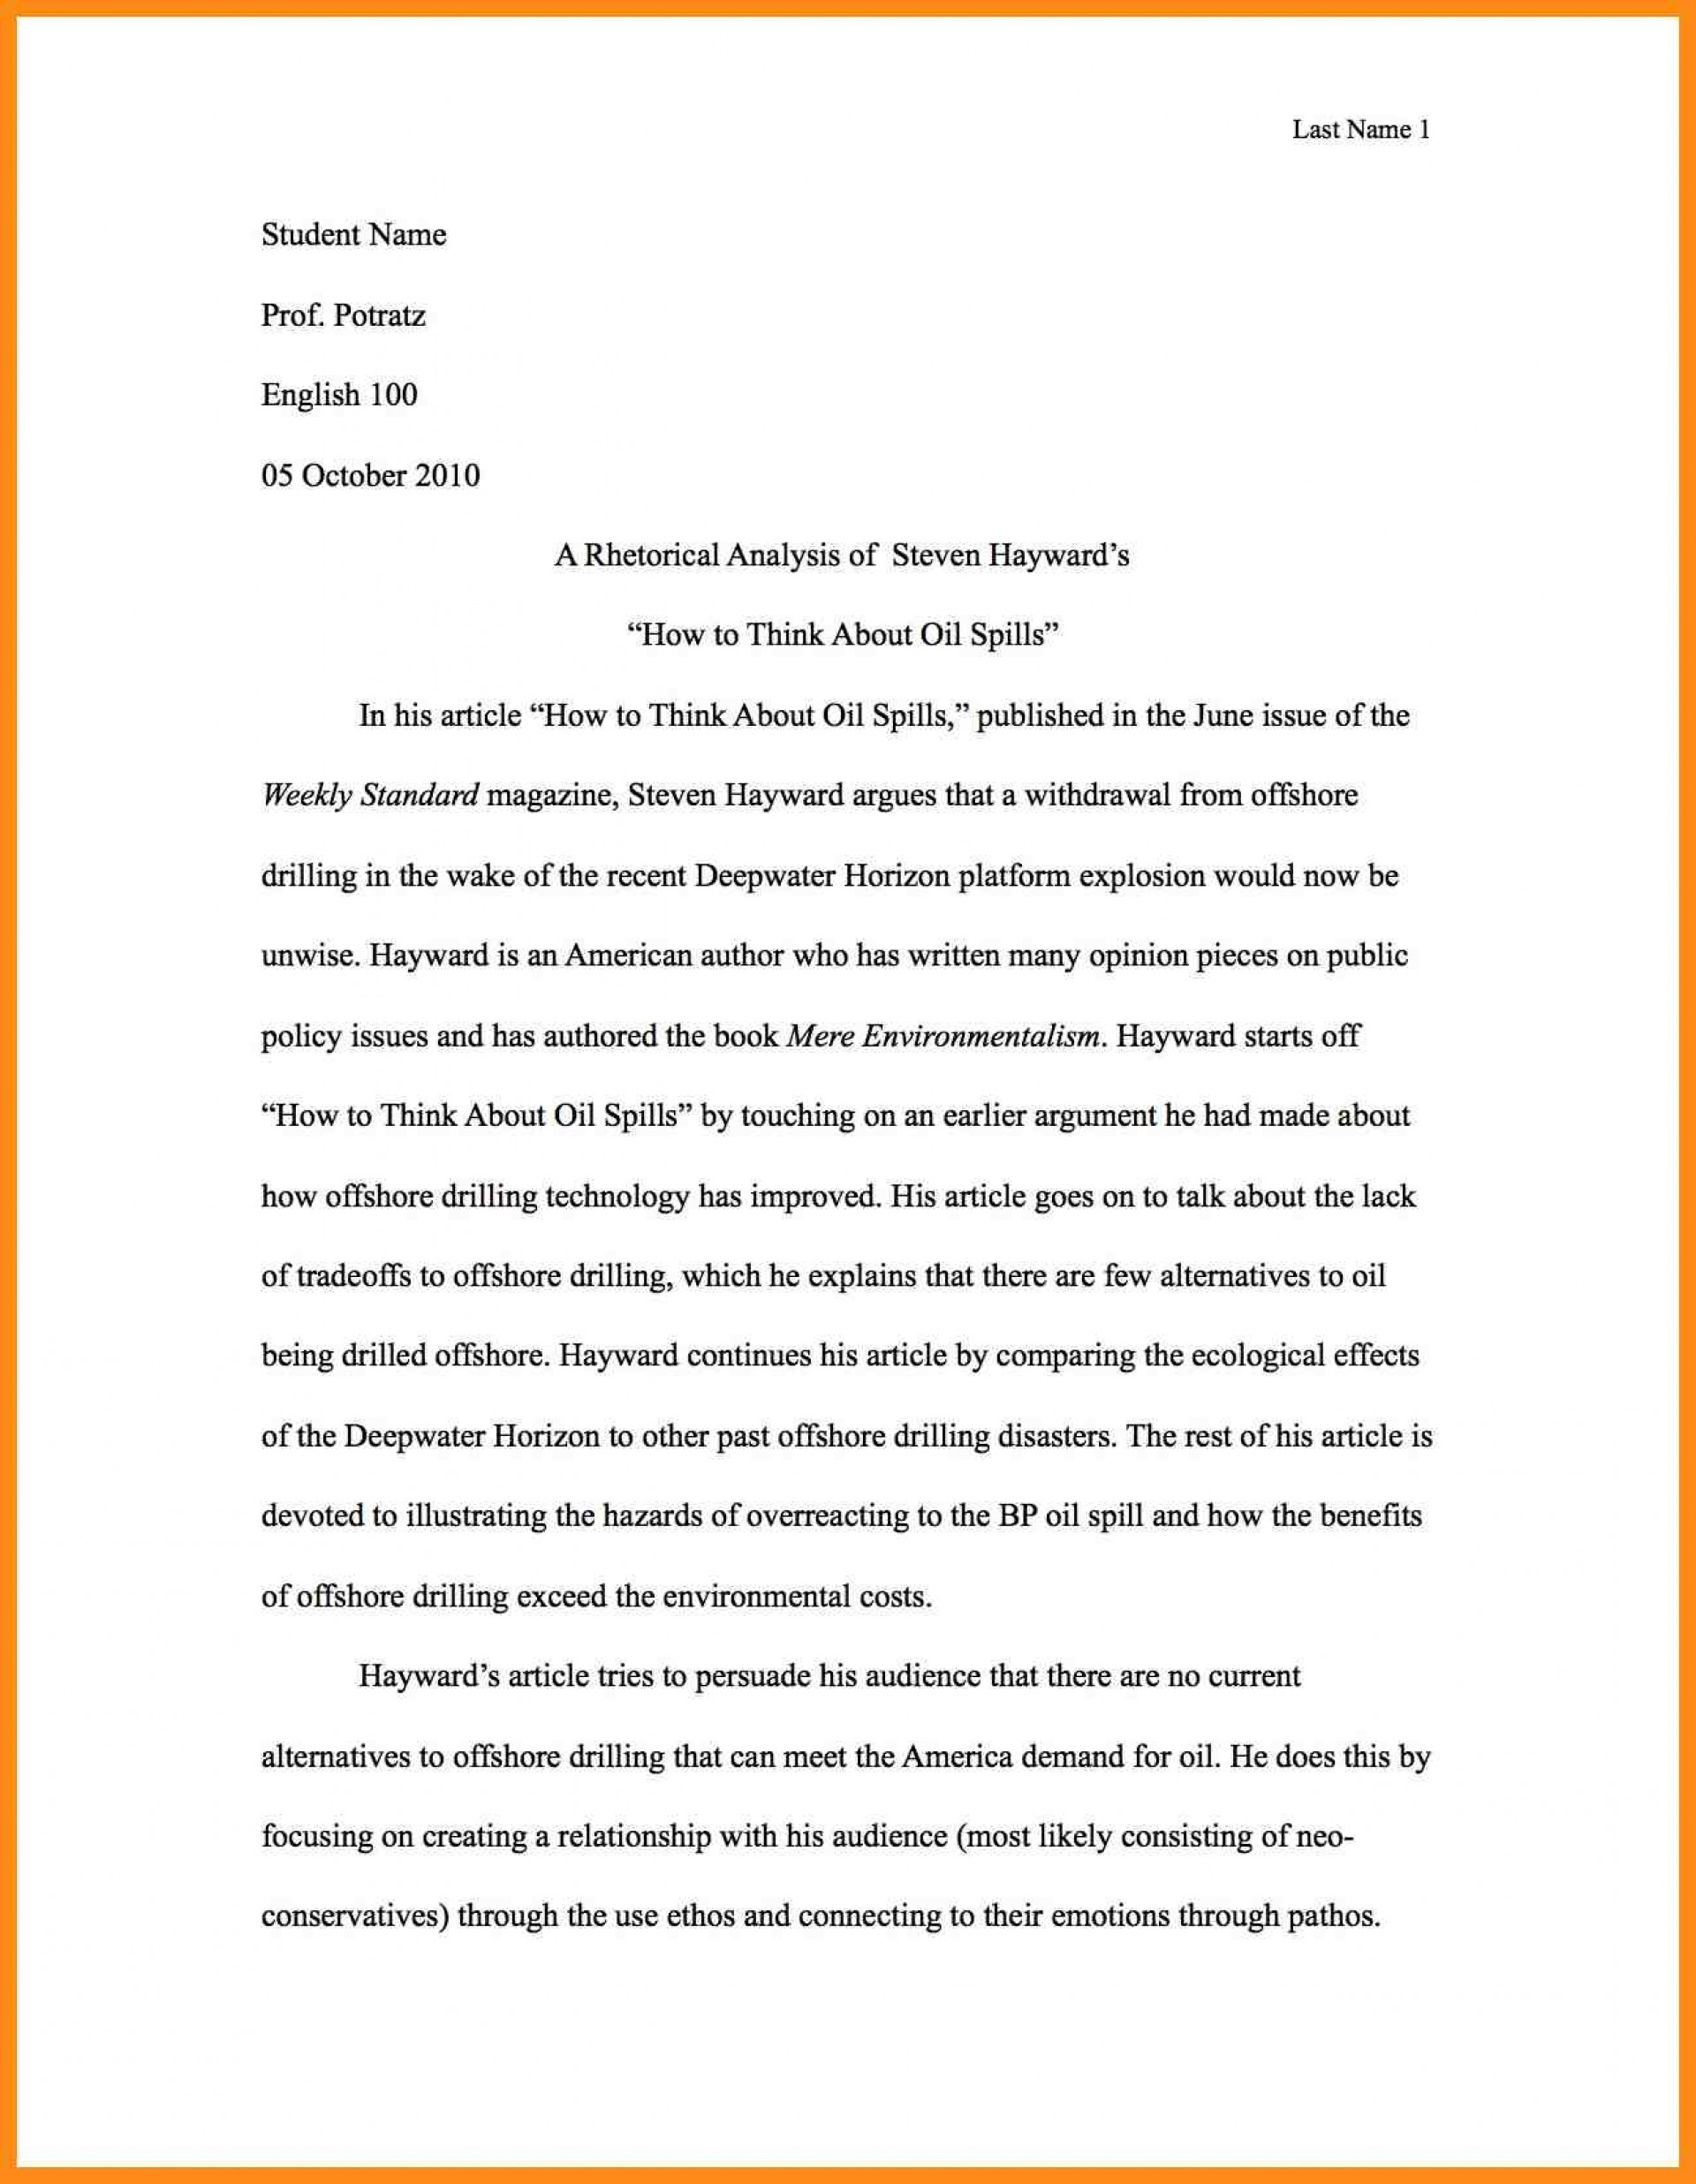 001 Essay Example Write Best Rhetorical Analysis Of Using Ethos Pathos And Logos Breathtaking Meaning Ap English Device Outline 1920